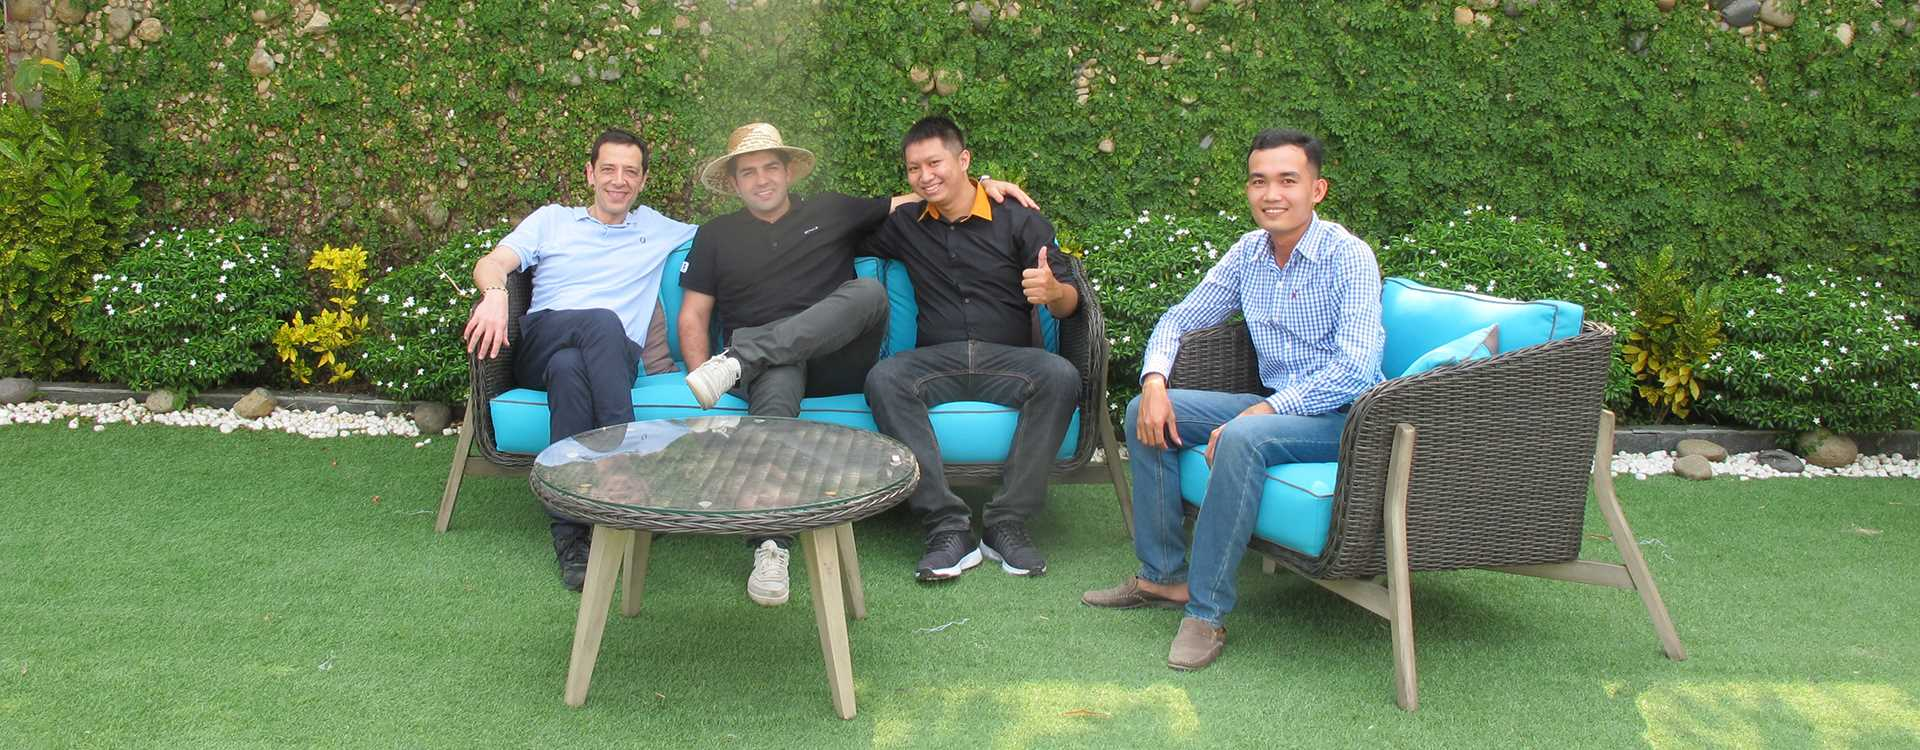 Wicker Patio Furniture Manufacturer Customer Visits Factory